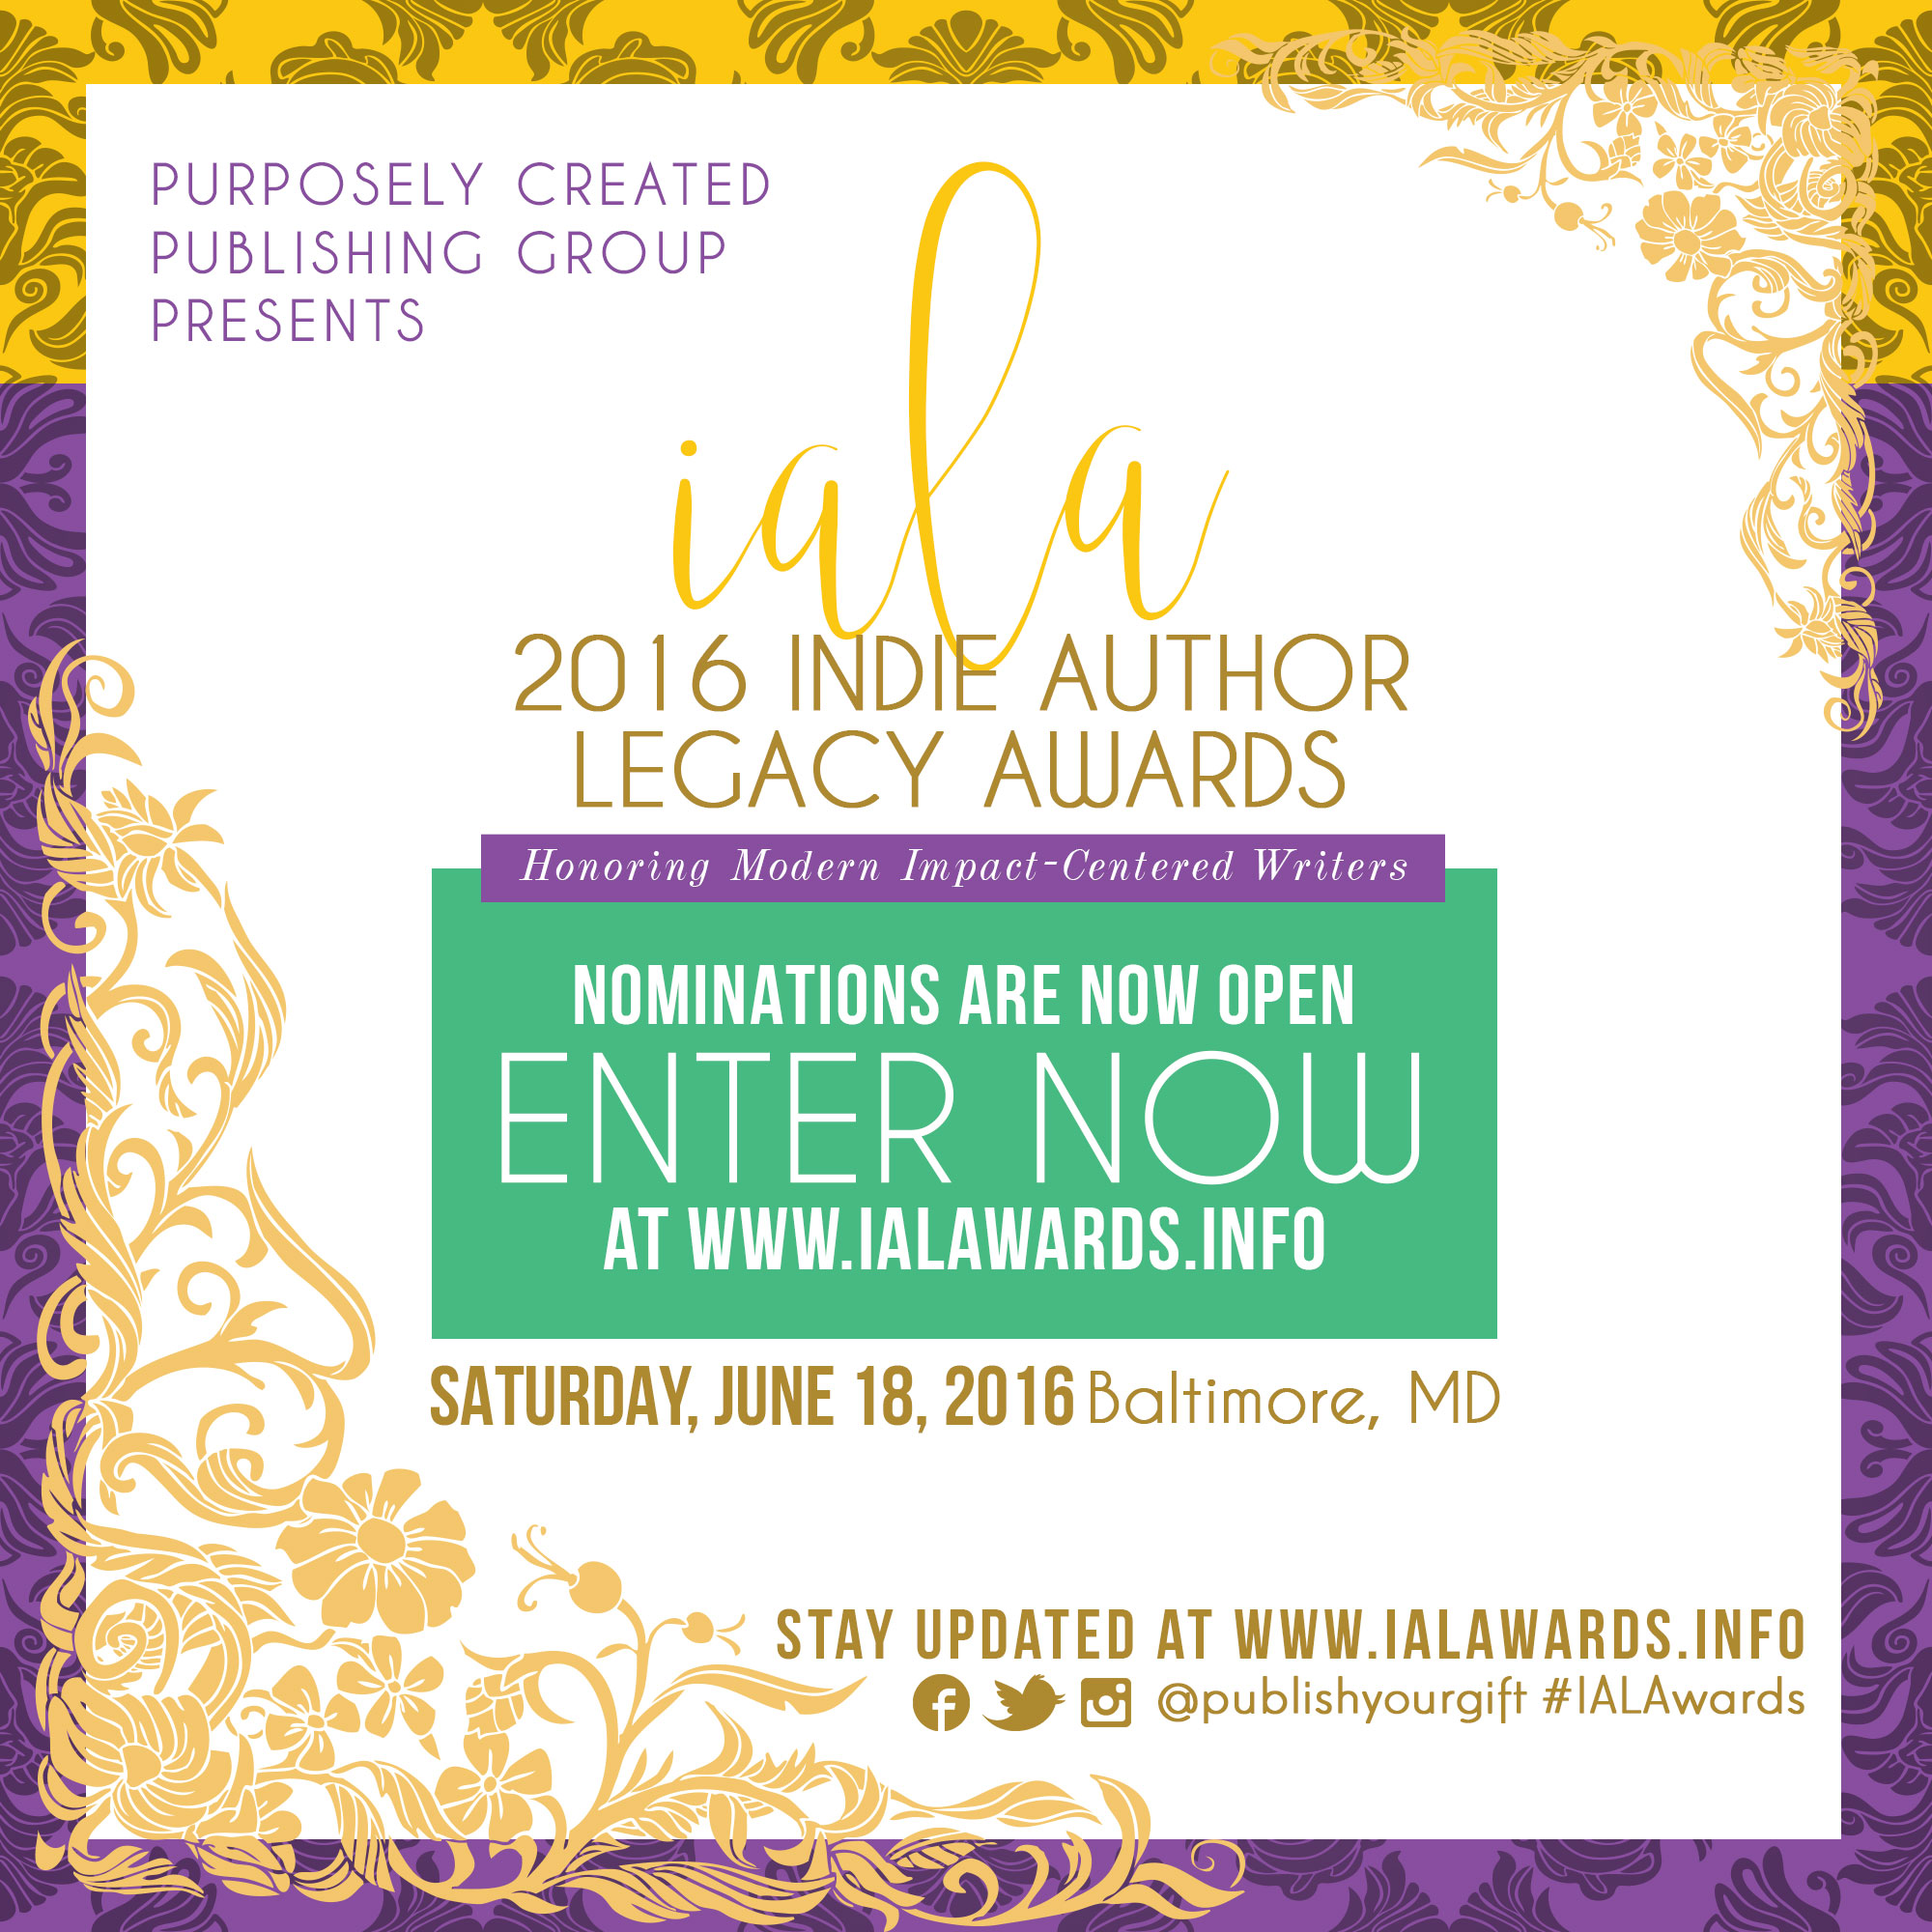 Indie Author Legacy Awards (IALAwards) Celebrates Non Fiction Authors